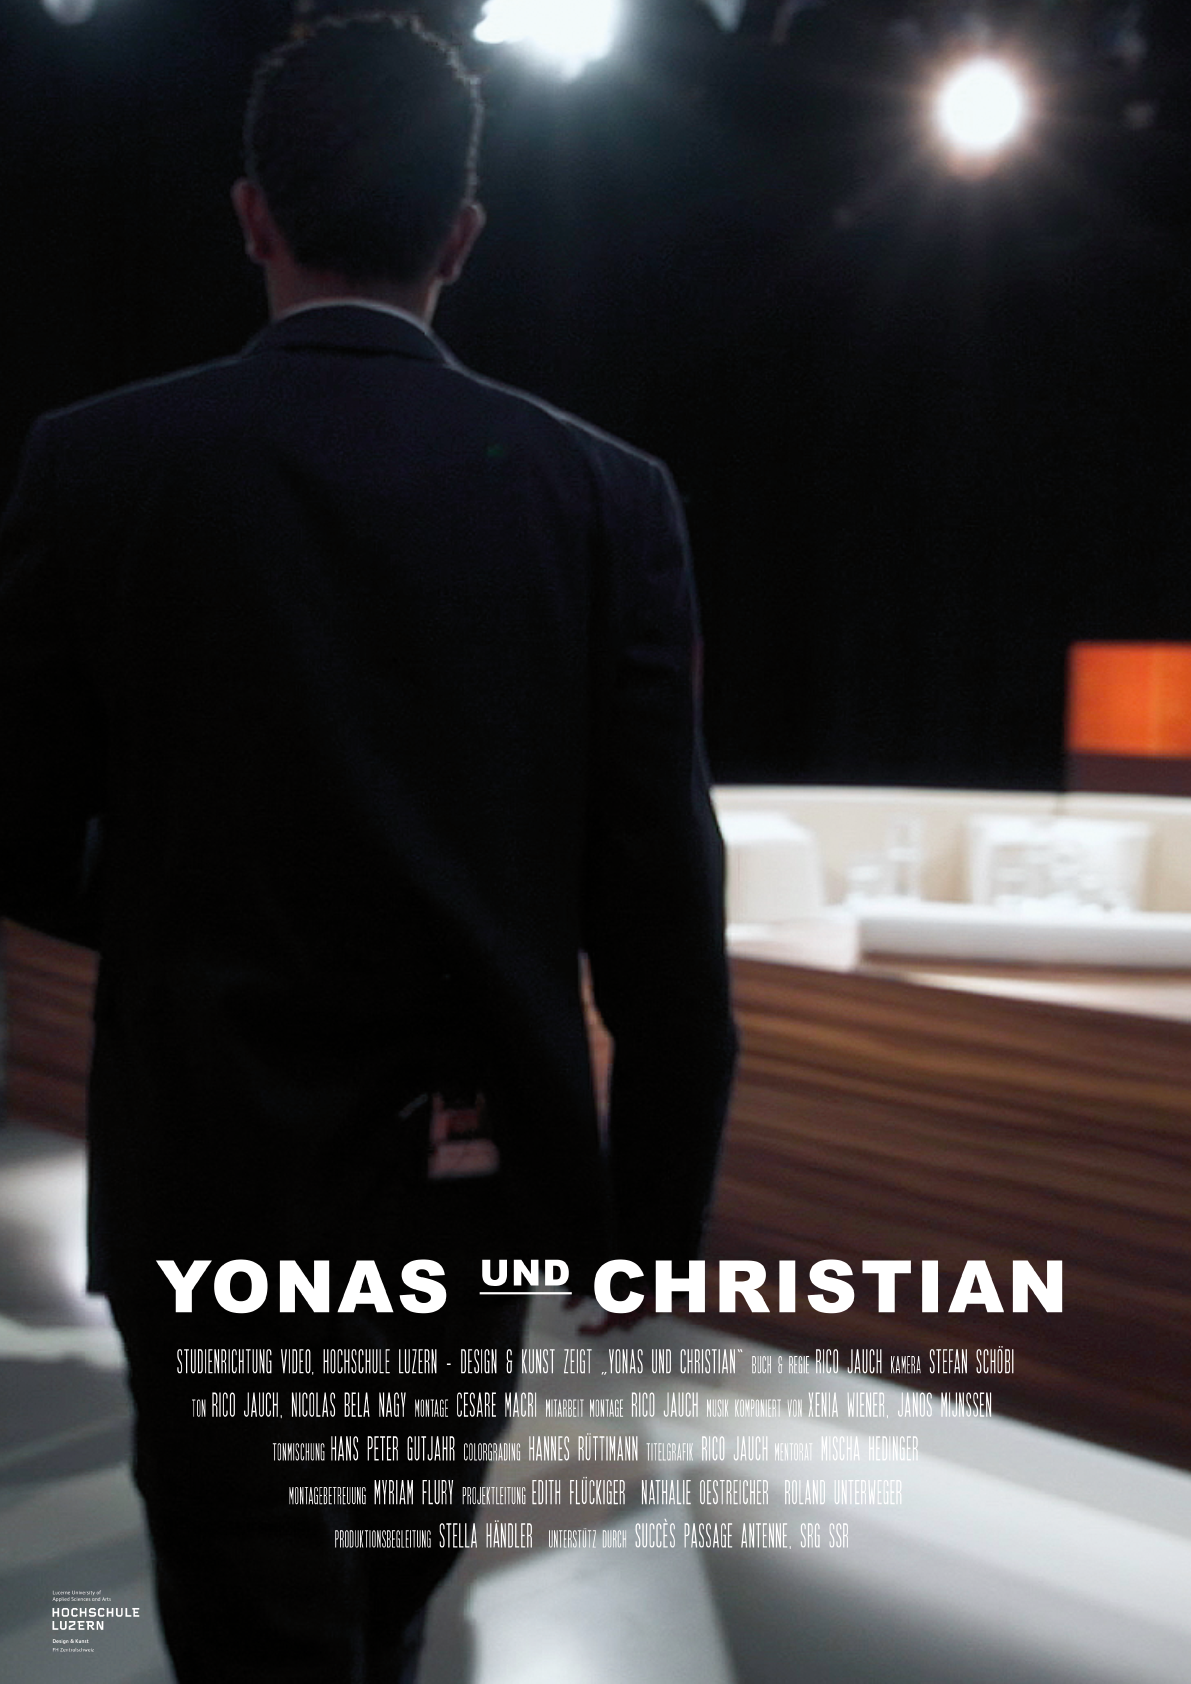 Yonas_und_Christian.png